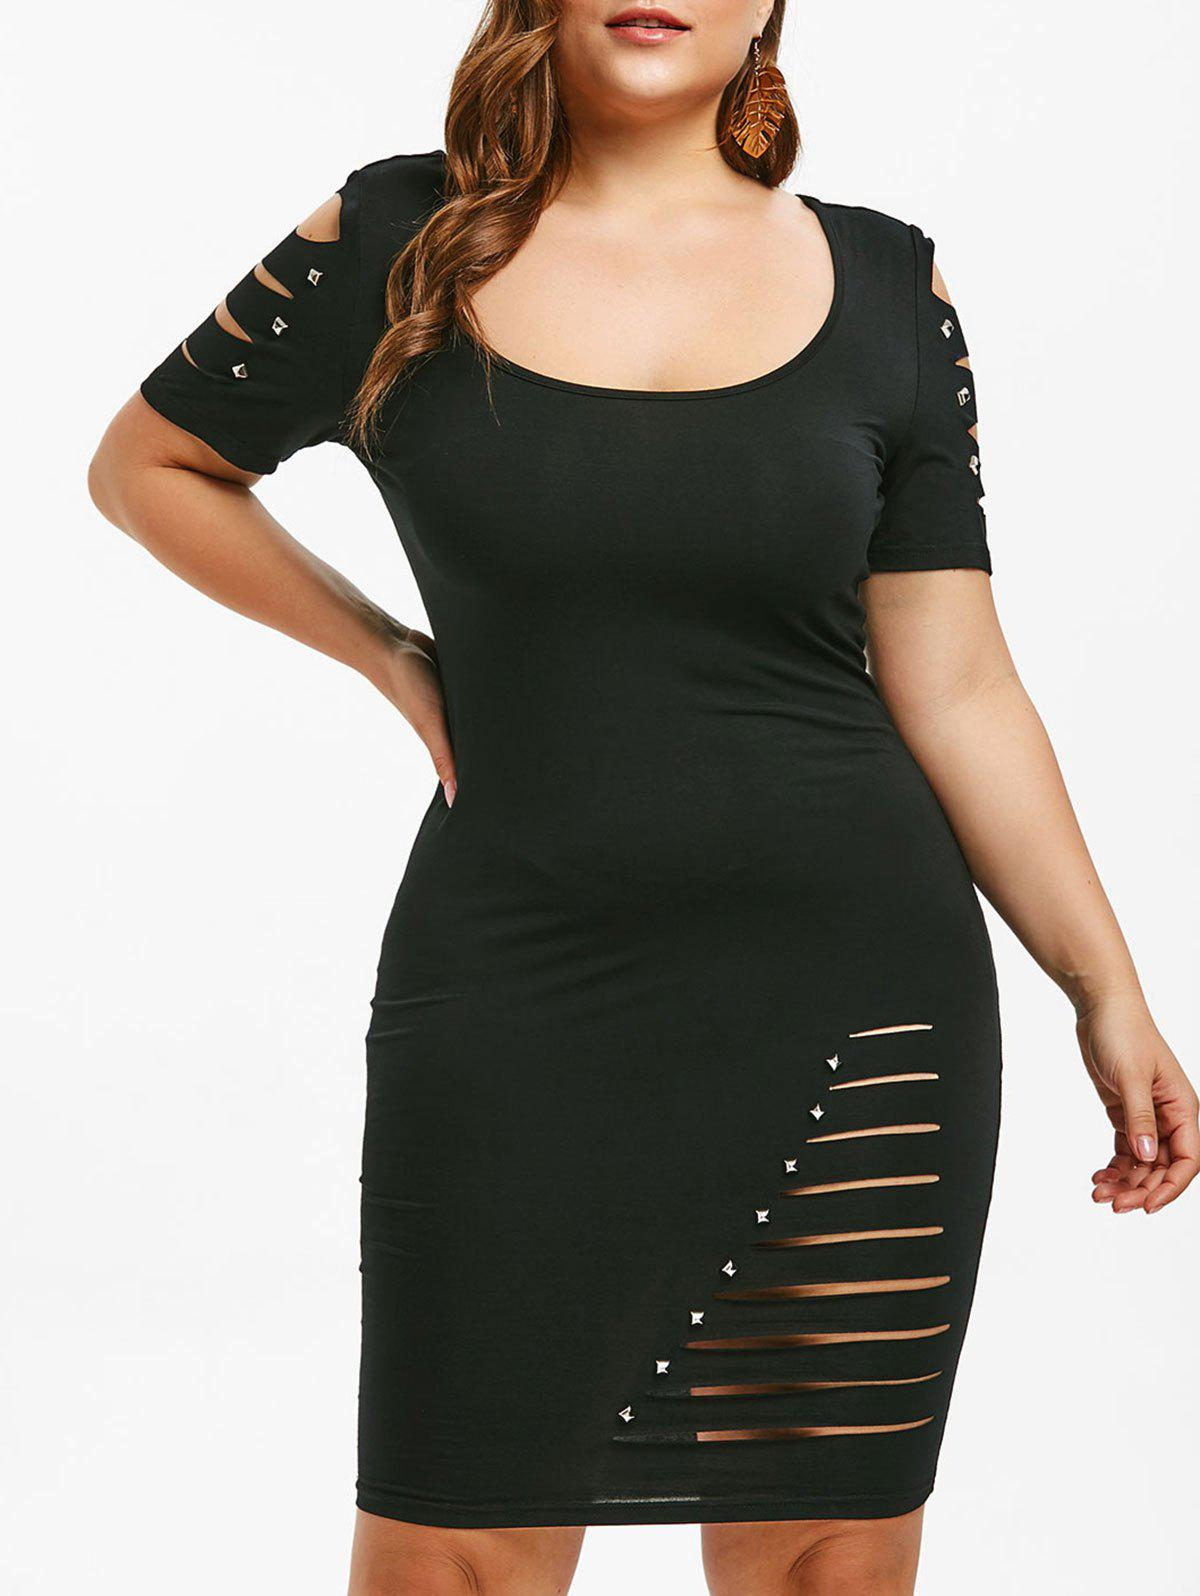 Ripped Rivet Plus Size Bodycon Dress